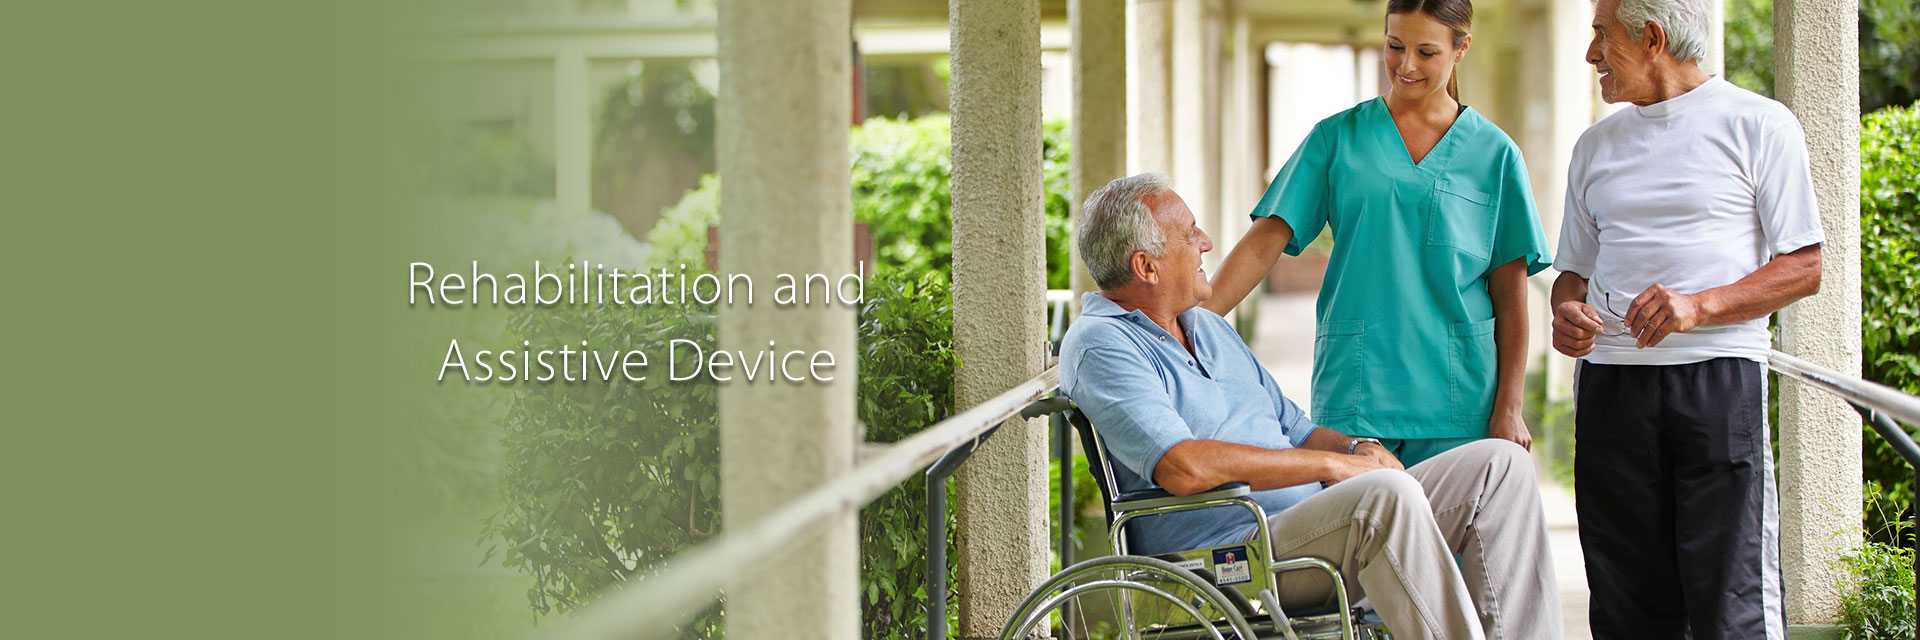 Rehabilitation and Assistive Device